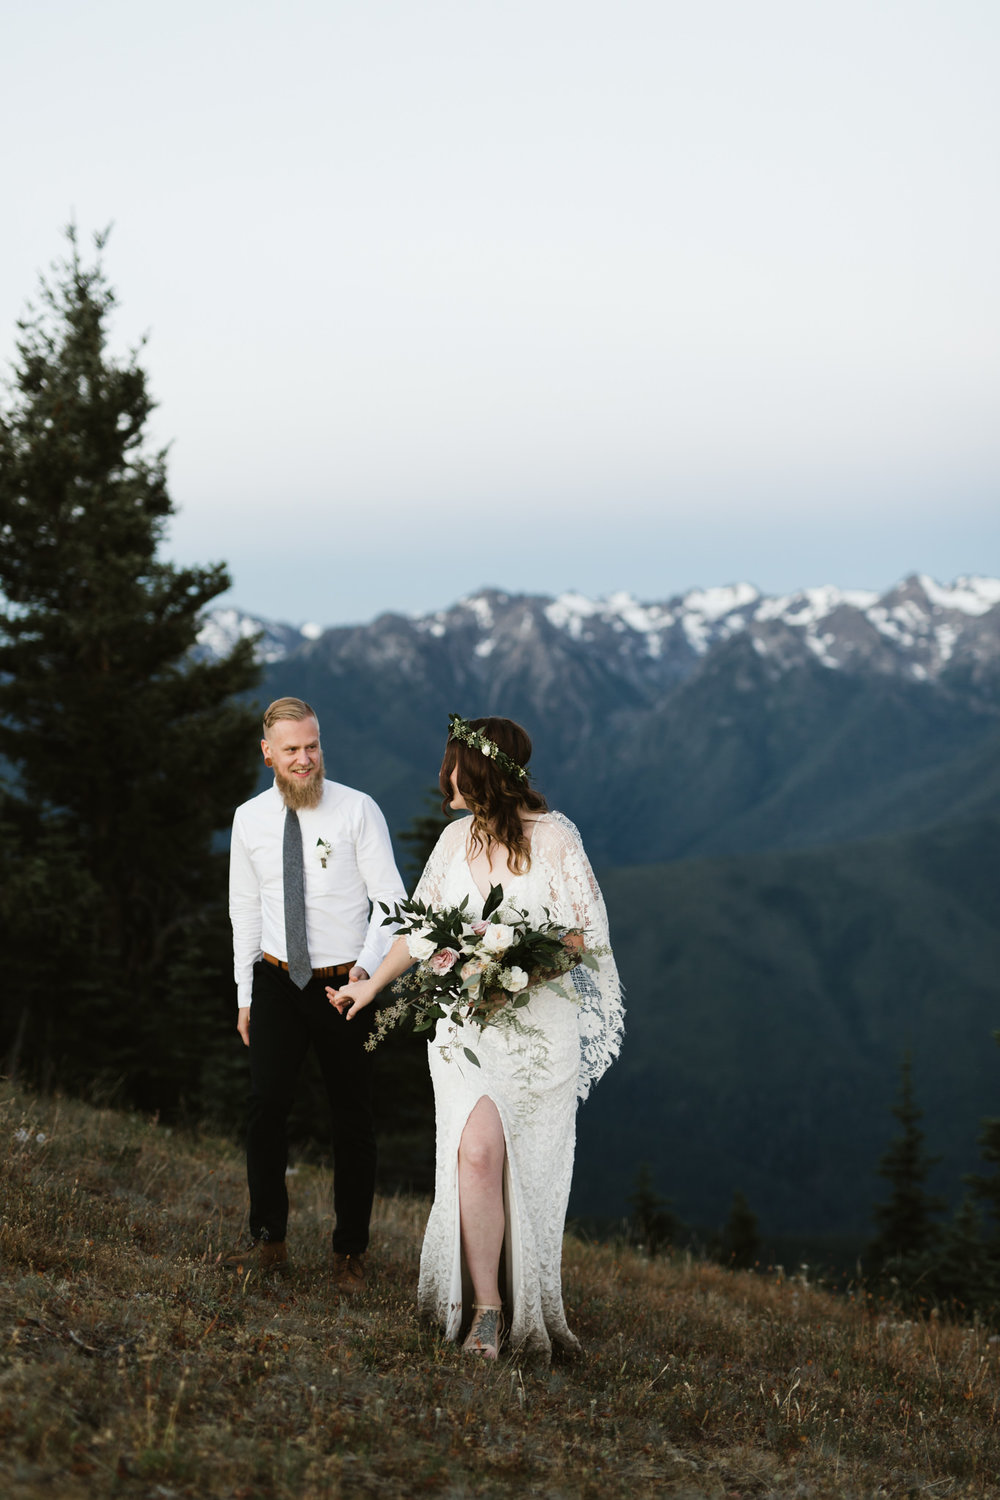 Jesse-Kasie-Hurricane-Ridge-Wedding-21.jpg